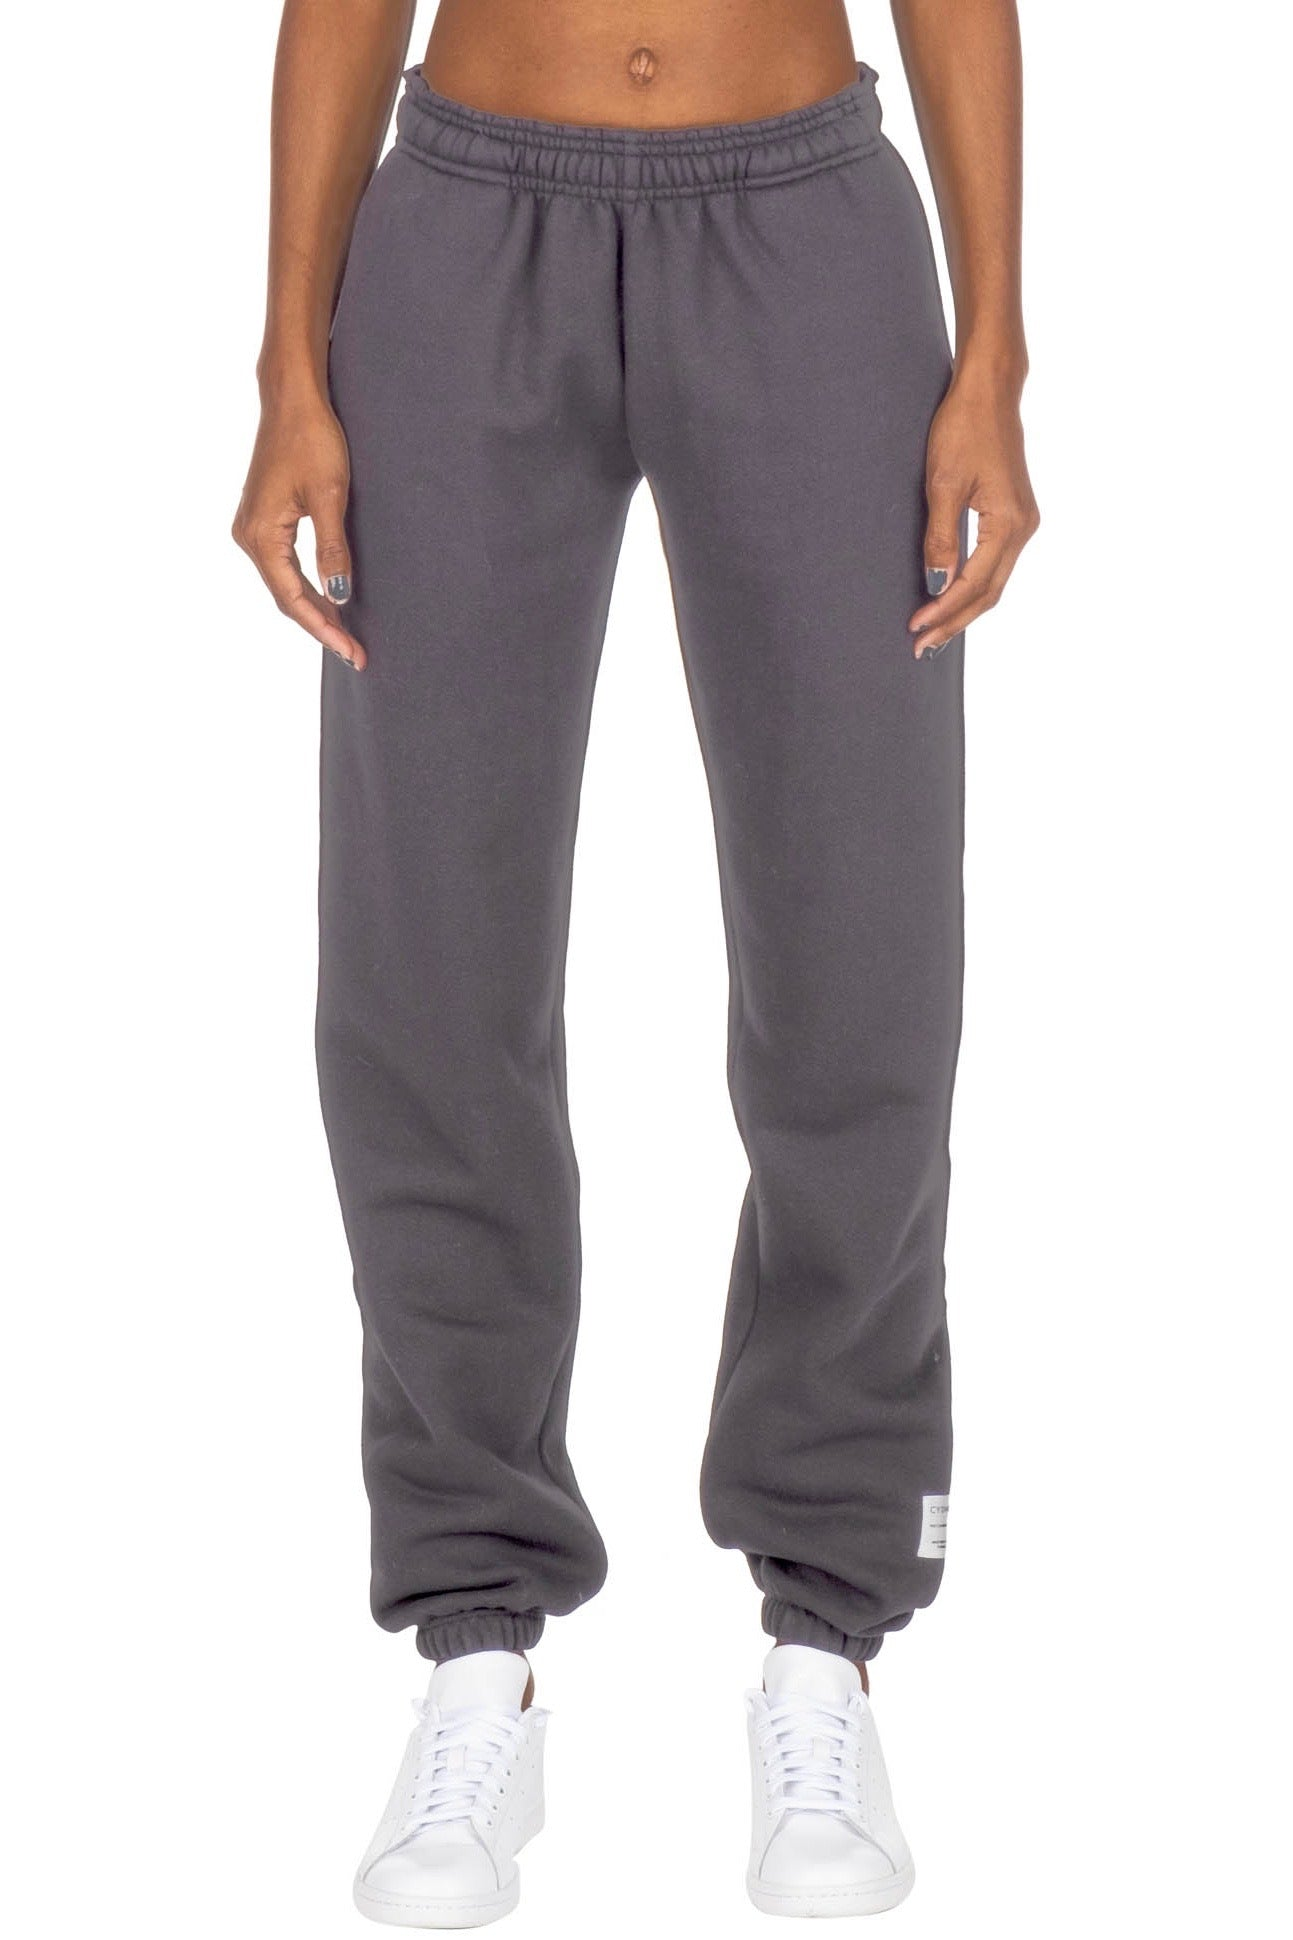 UNISEX SWEATPANTS - Space Grey